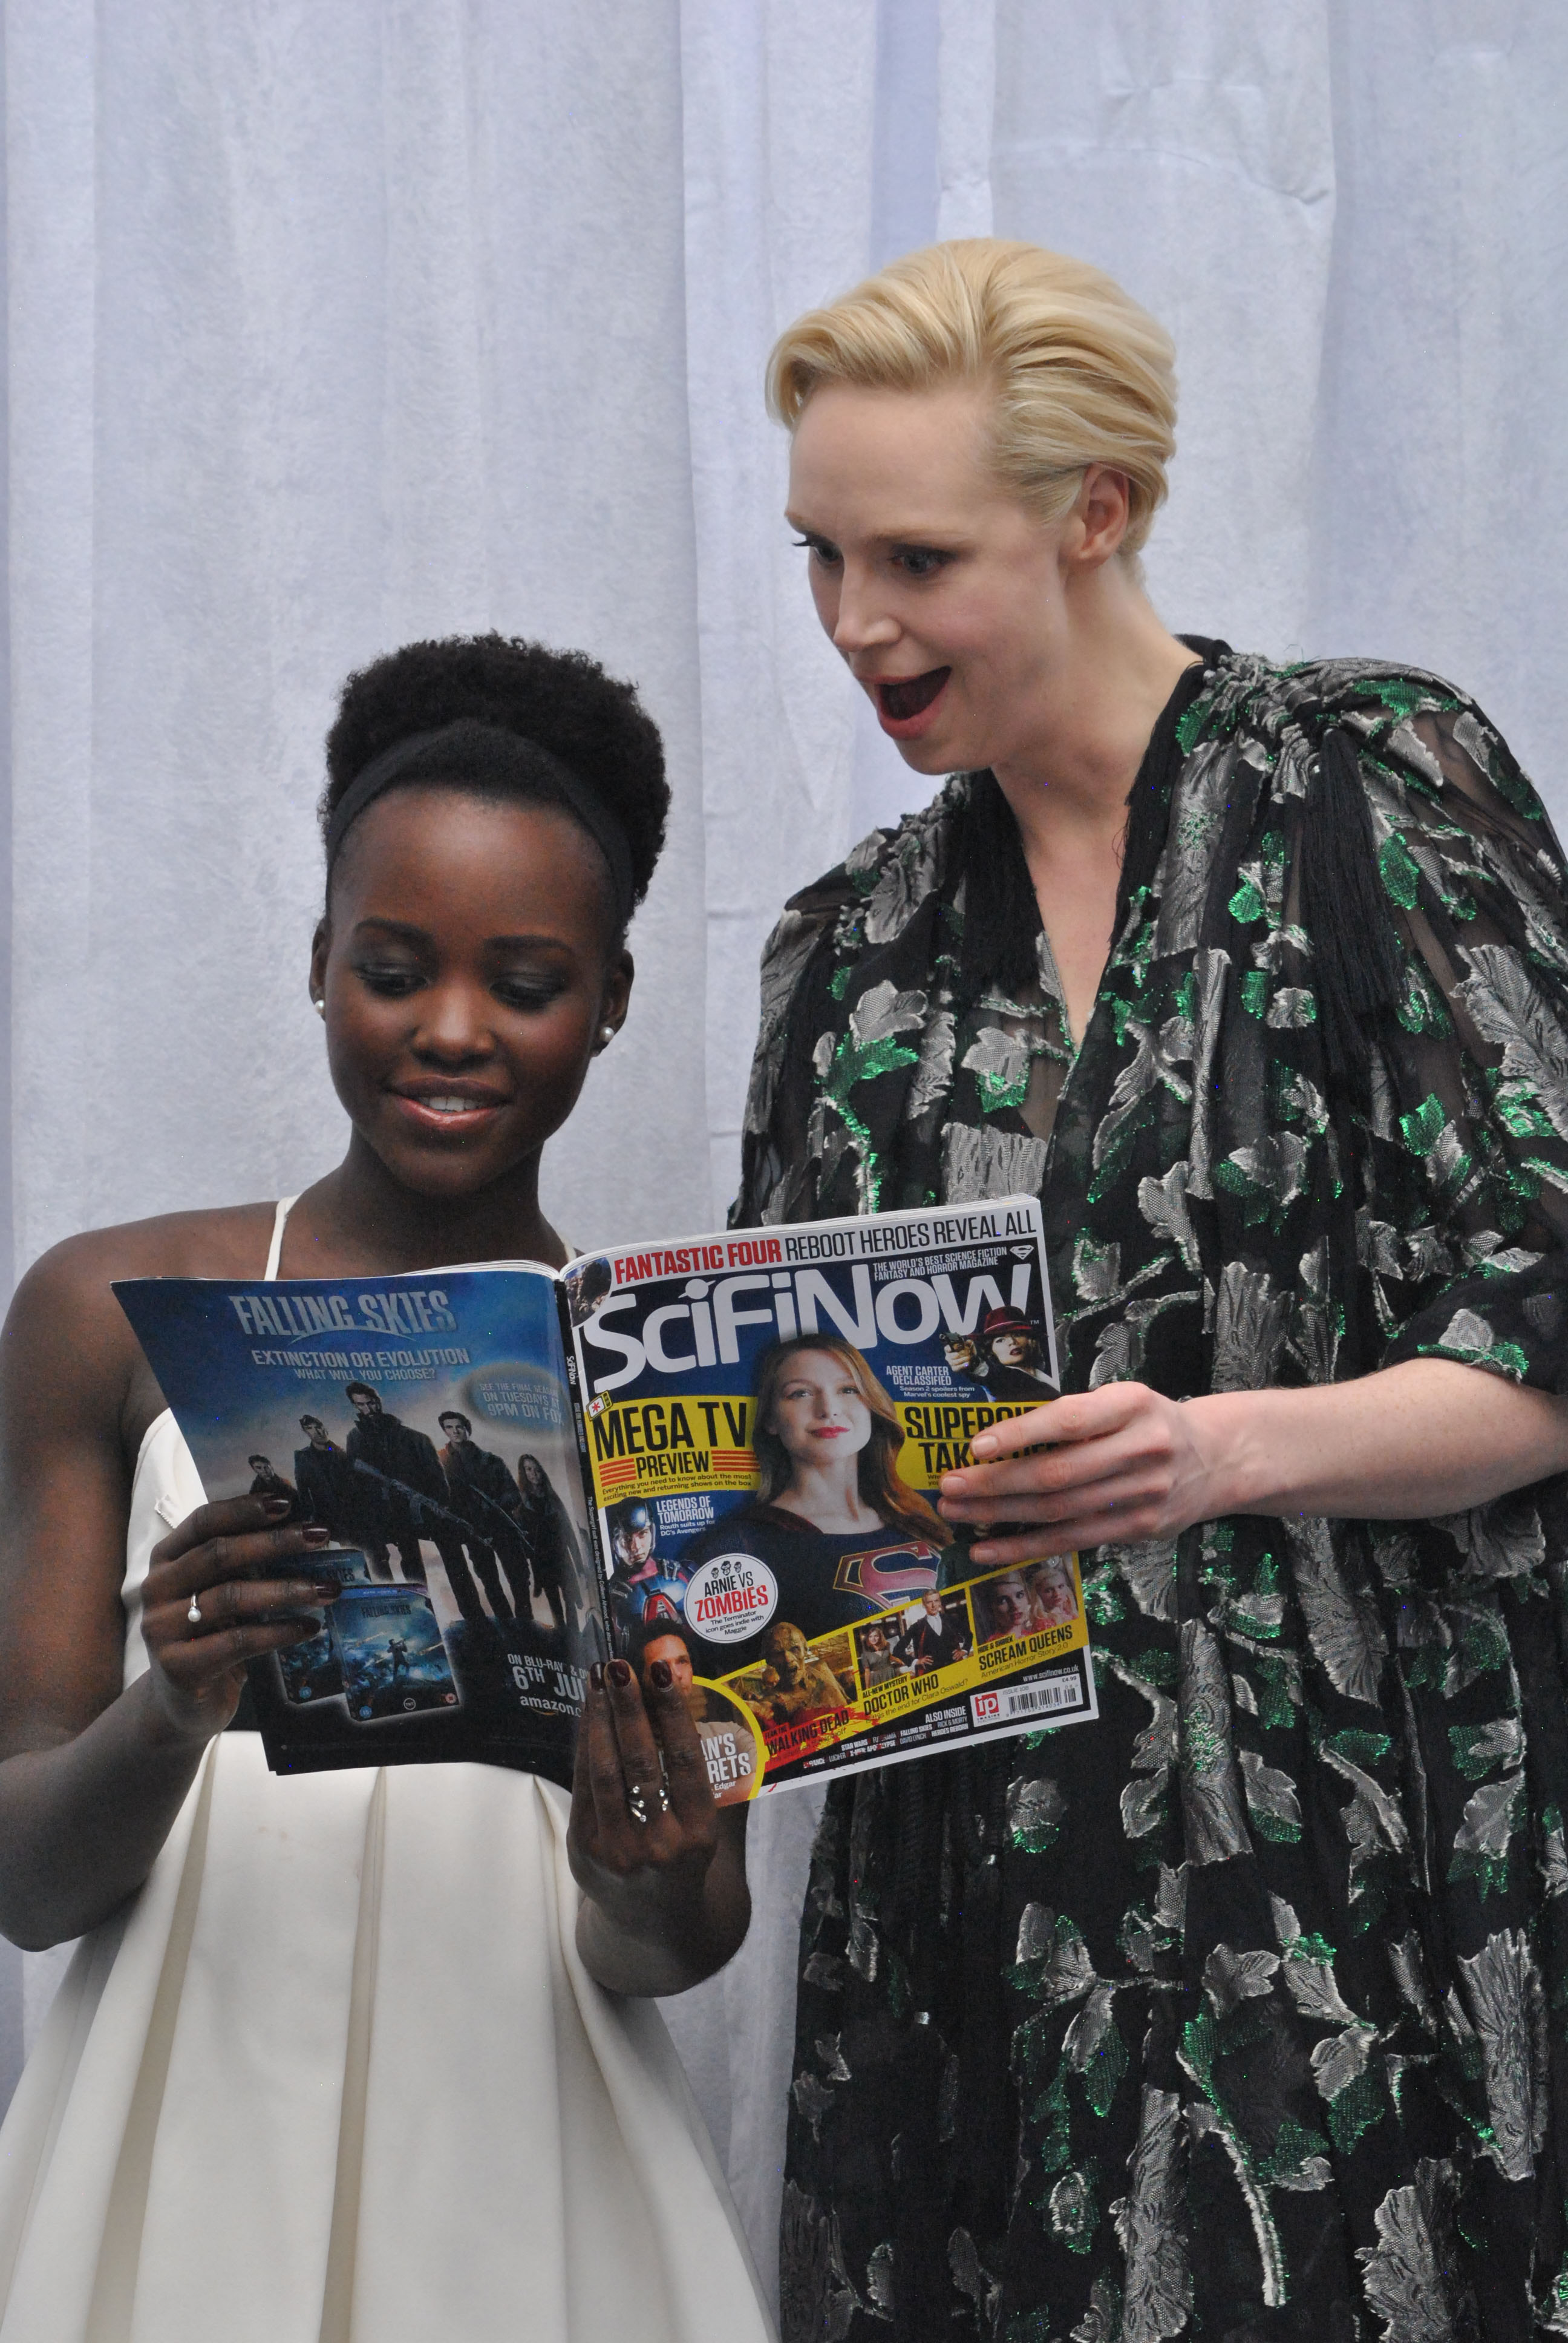 Lupita Nyong'o & Gwendoline Christie 120415 Star Wars The Force Awakens - 39(1)